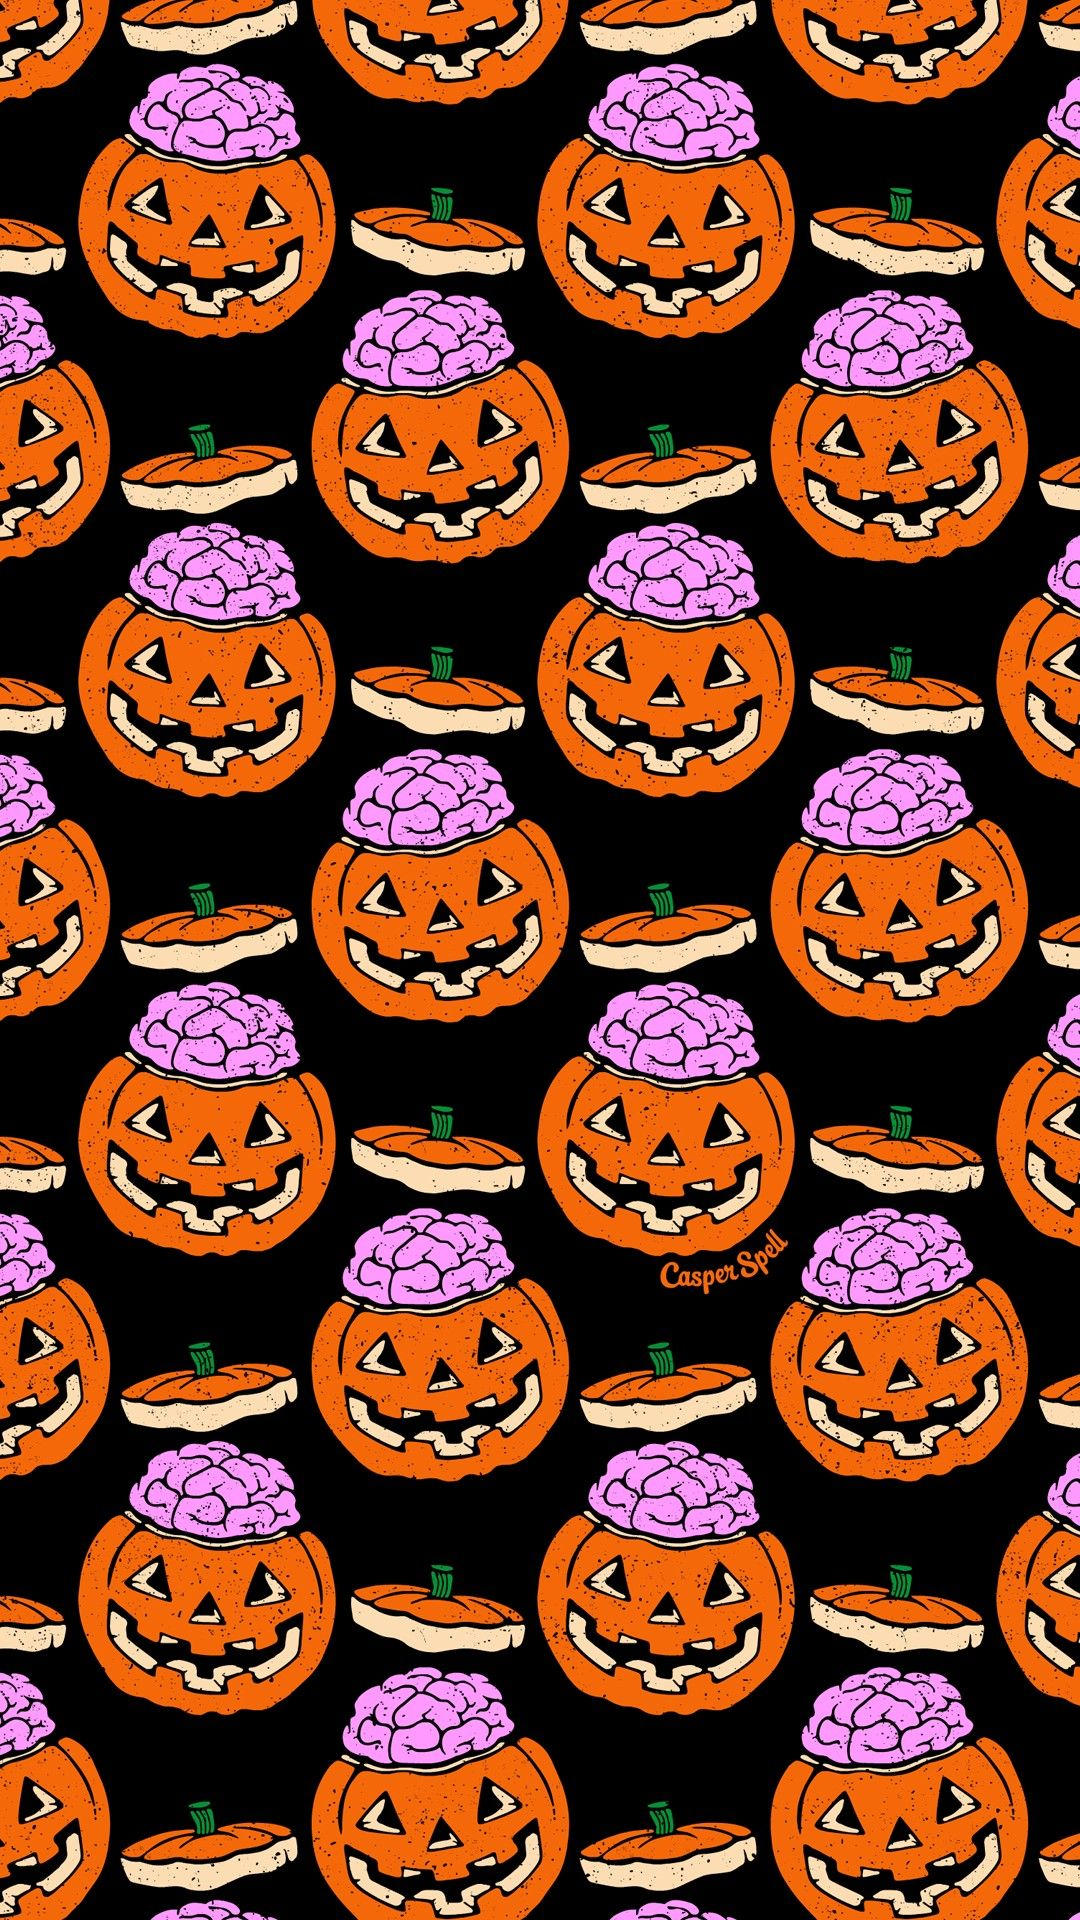 Halloween Pumpkin Brain Repeat Pattern By Casper Spell Cute Spooky Phone Wallp Halloween Wallpaper Iphone Halloween Wallpaper Backgrounds Halloween Wallpaper